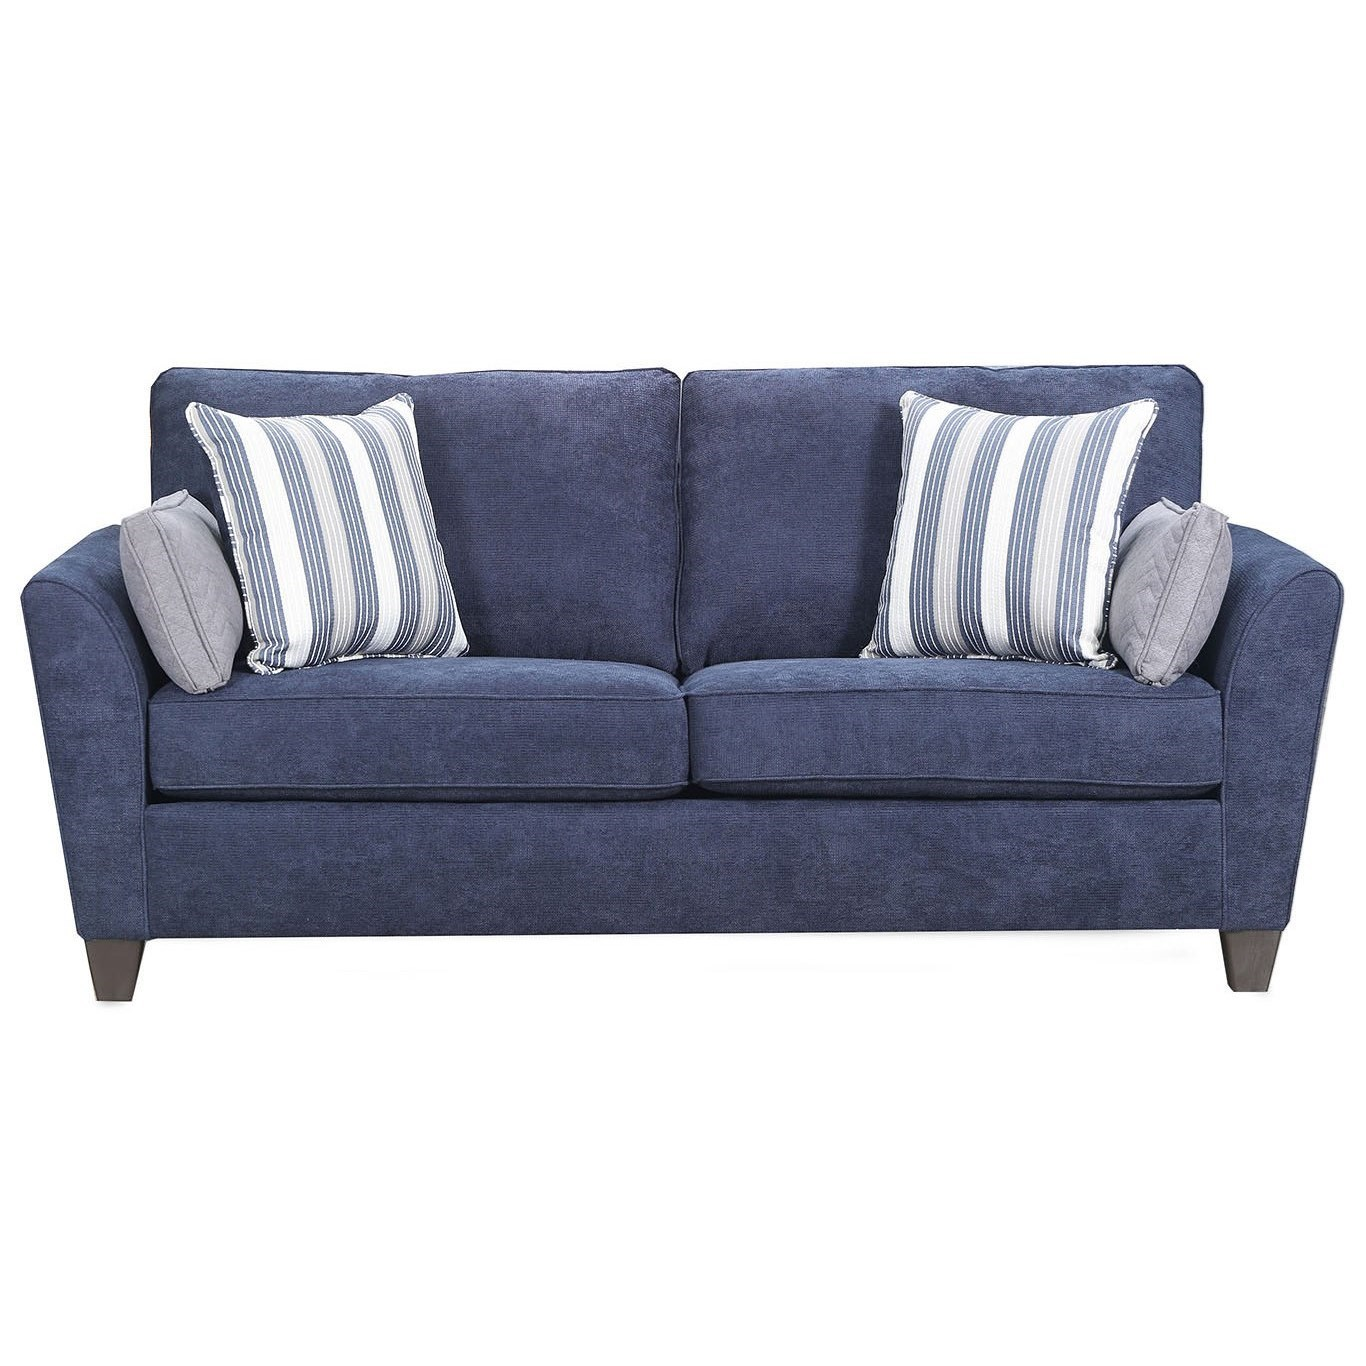 7081 Queen Sleeper Sofa by Lane at Powell's Furniture and Mattress